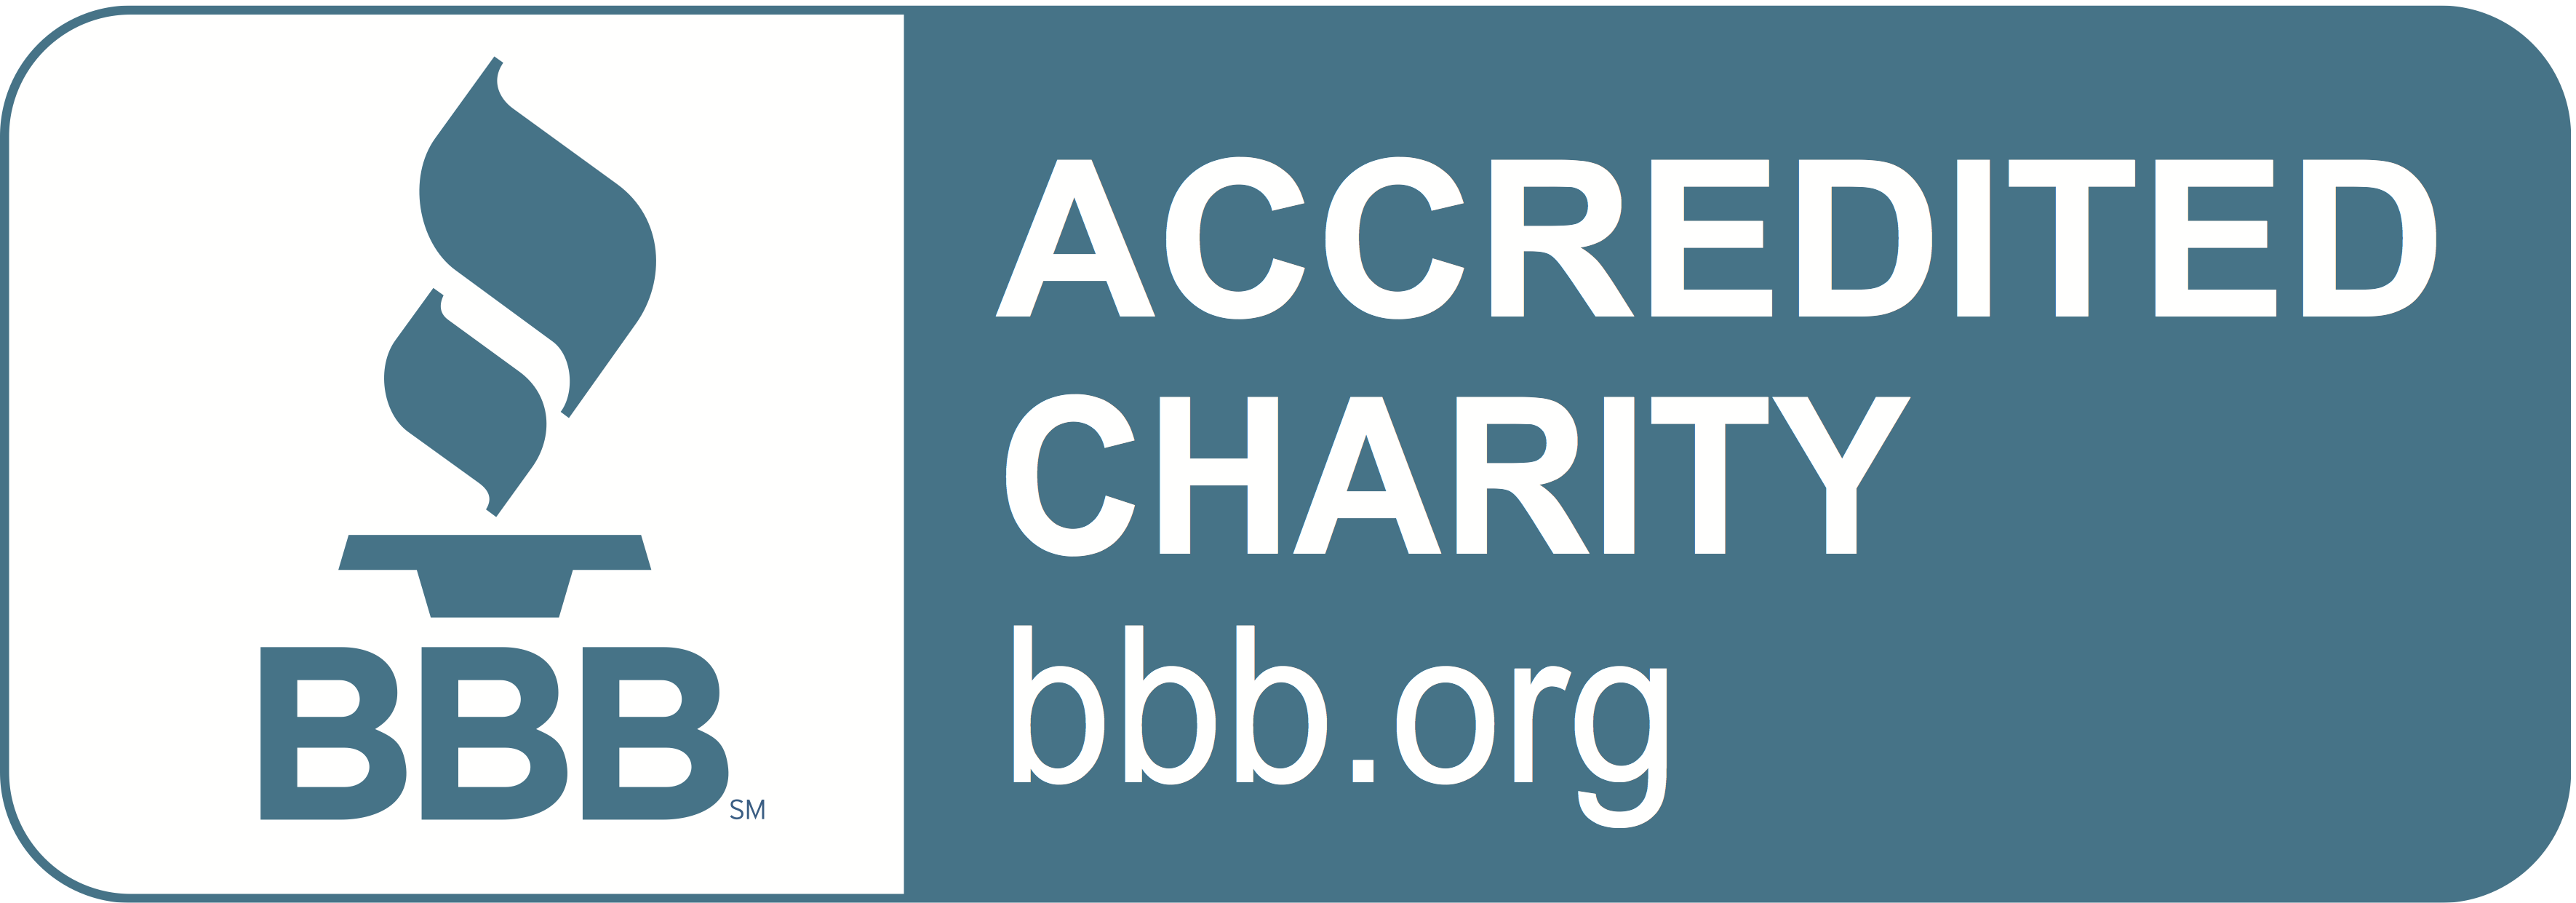 BBB Accredited Charity Badge